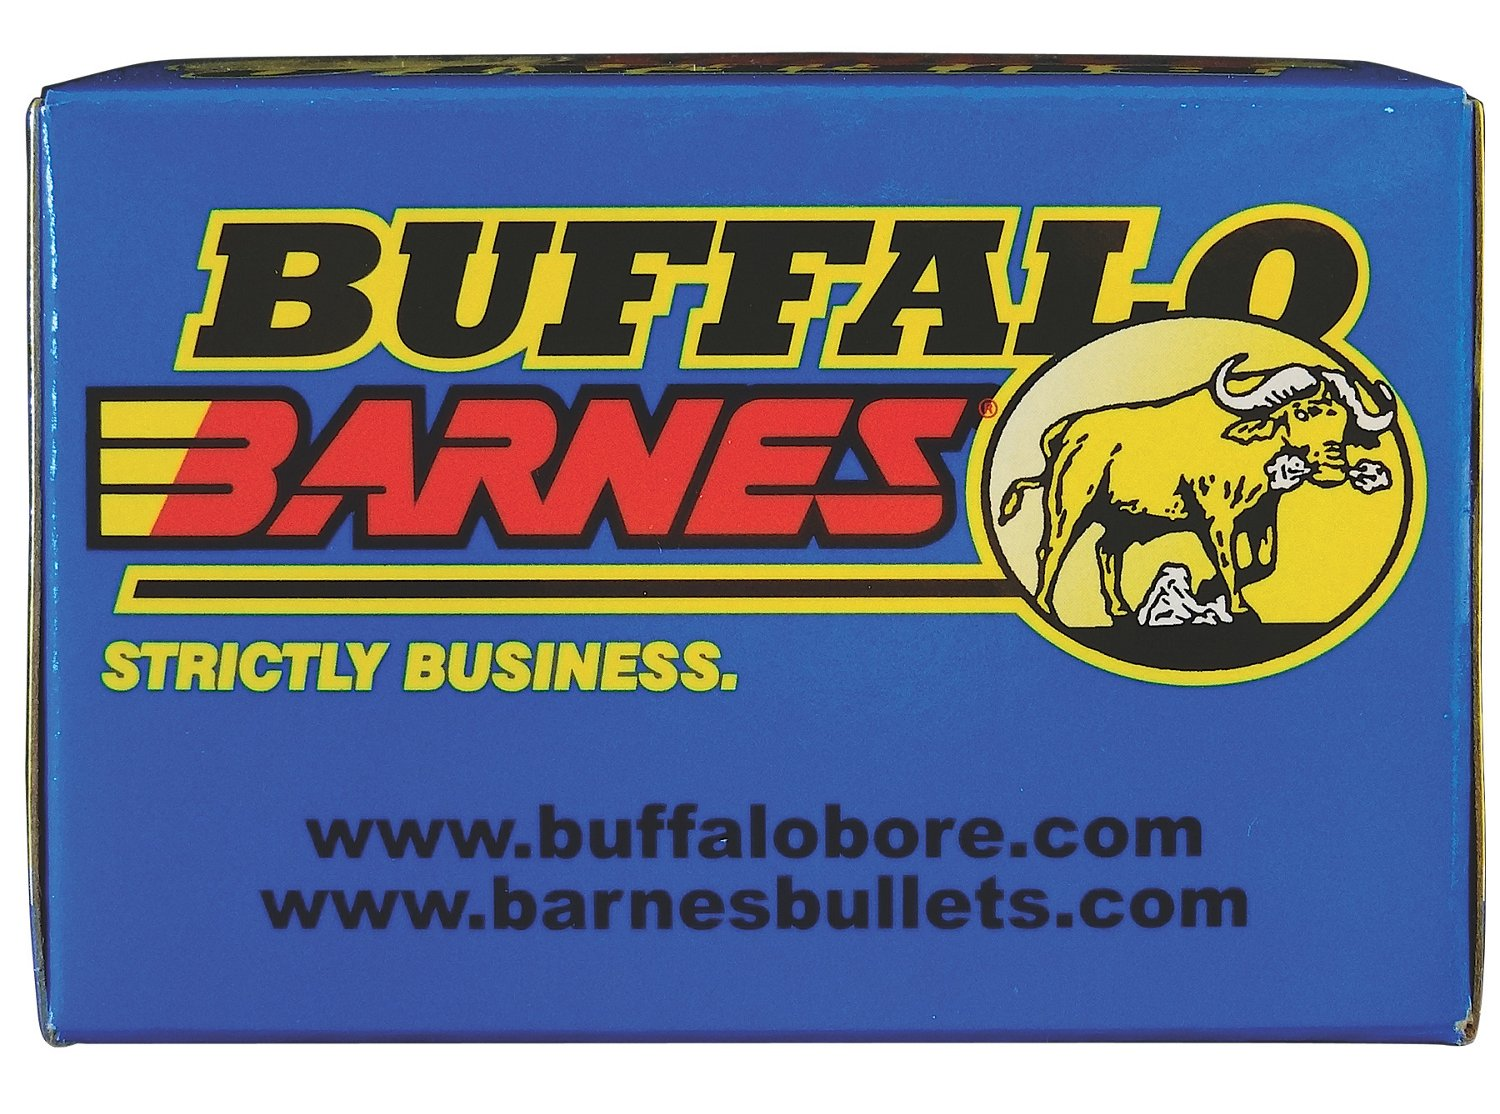 Buffalo Bore Barnes Lead-Free Centerfire Rifle Ammunition - view number 1